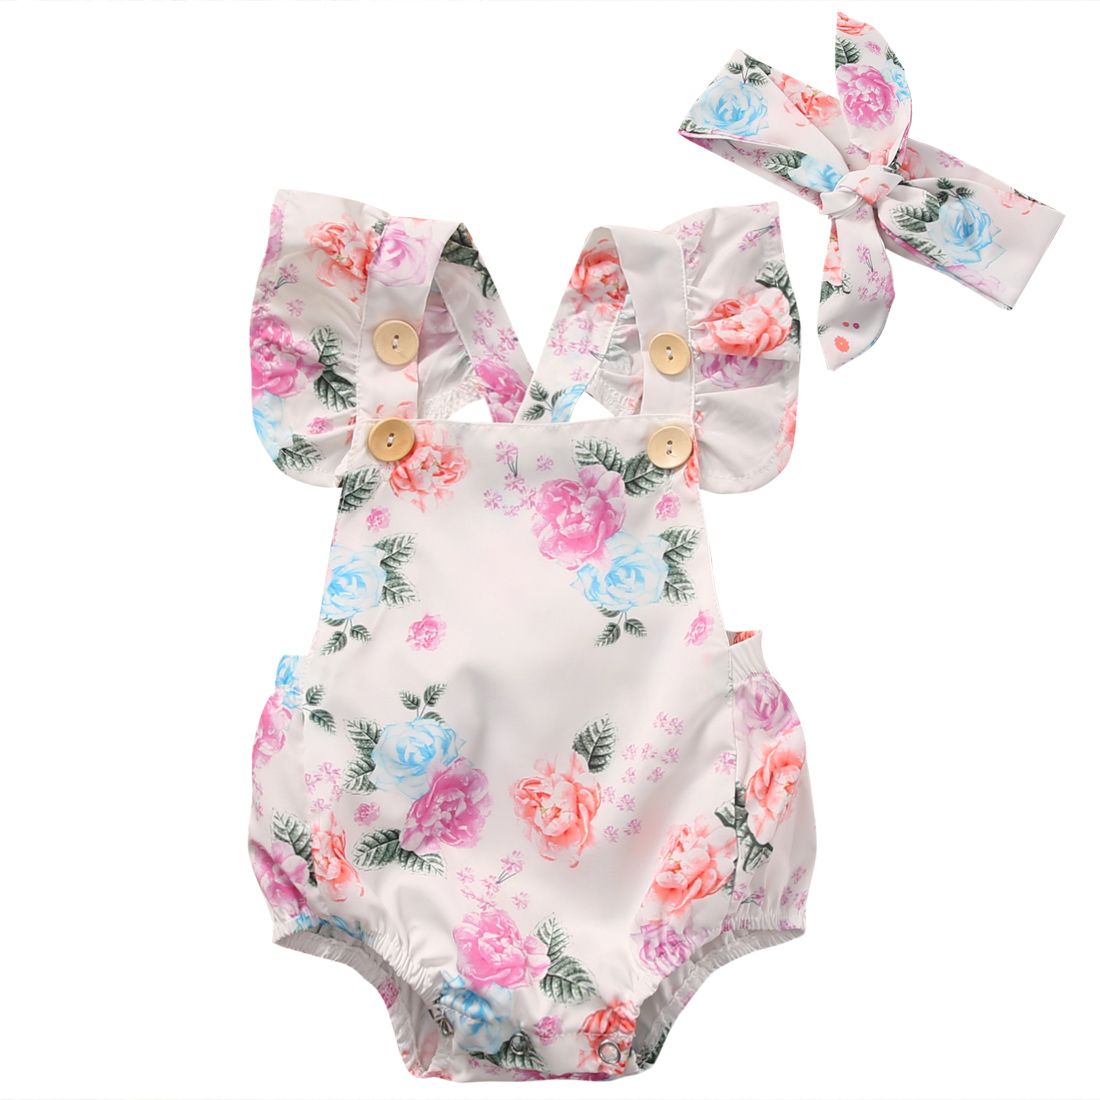 33d209fa7df 0-24M Adorable Baby Girls Floral Romper Summer Infant Toddler Baby Girl  Short Ruffle Sleeve